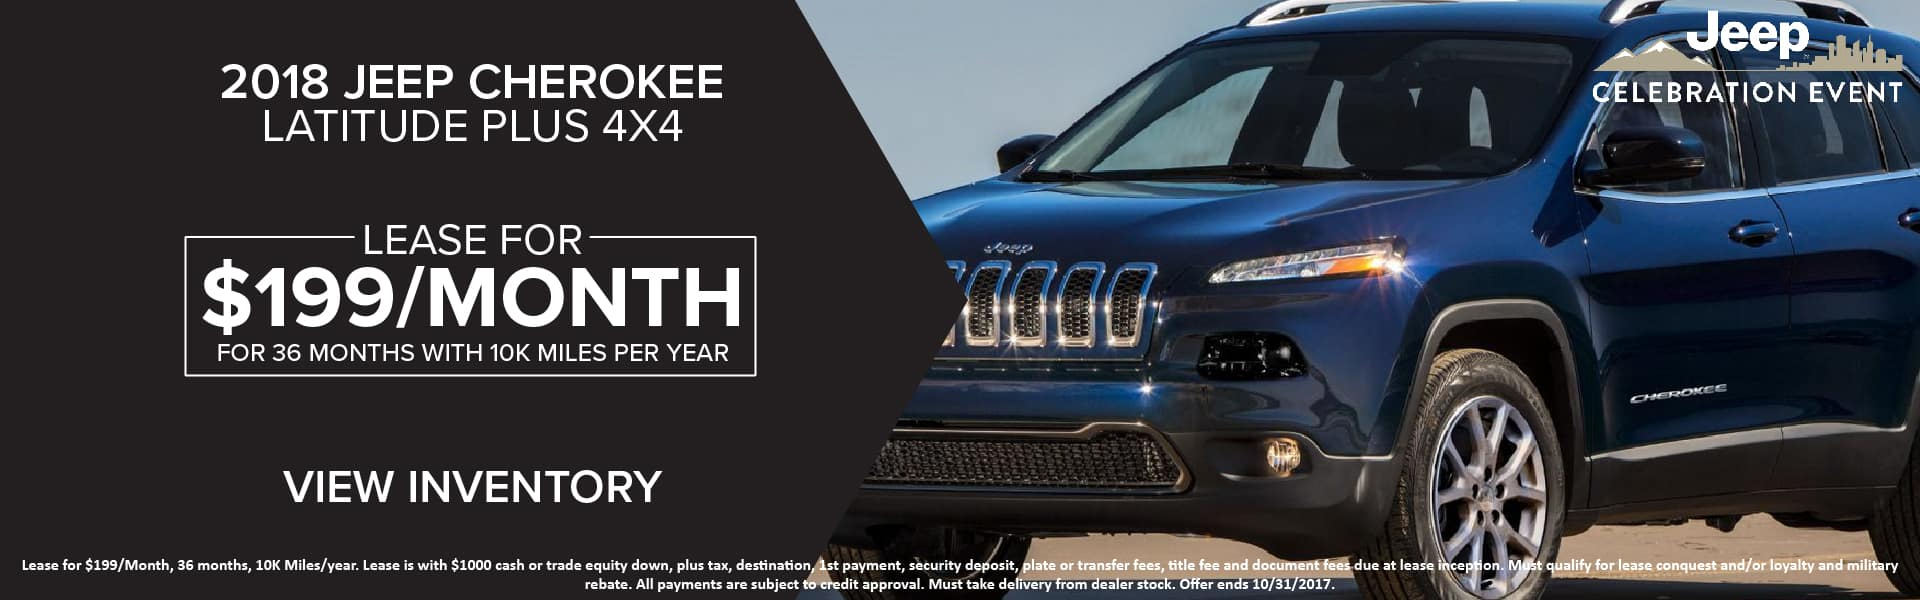 Jeep Cherokee | LaFontaine Chrysler Dodge Jeep Ram of Fenton